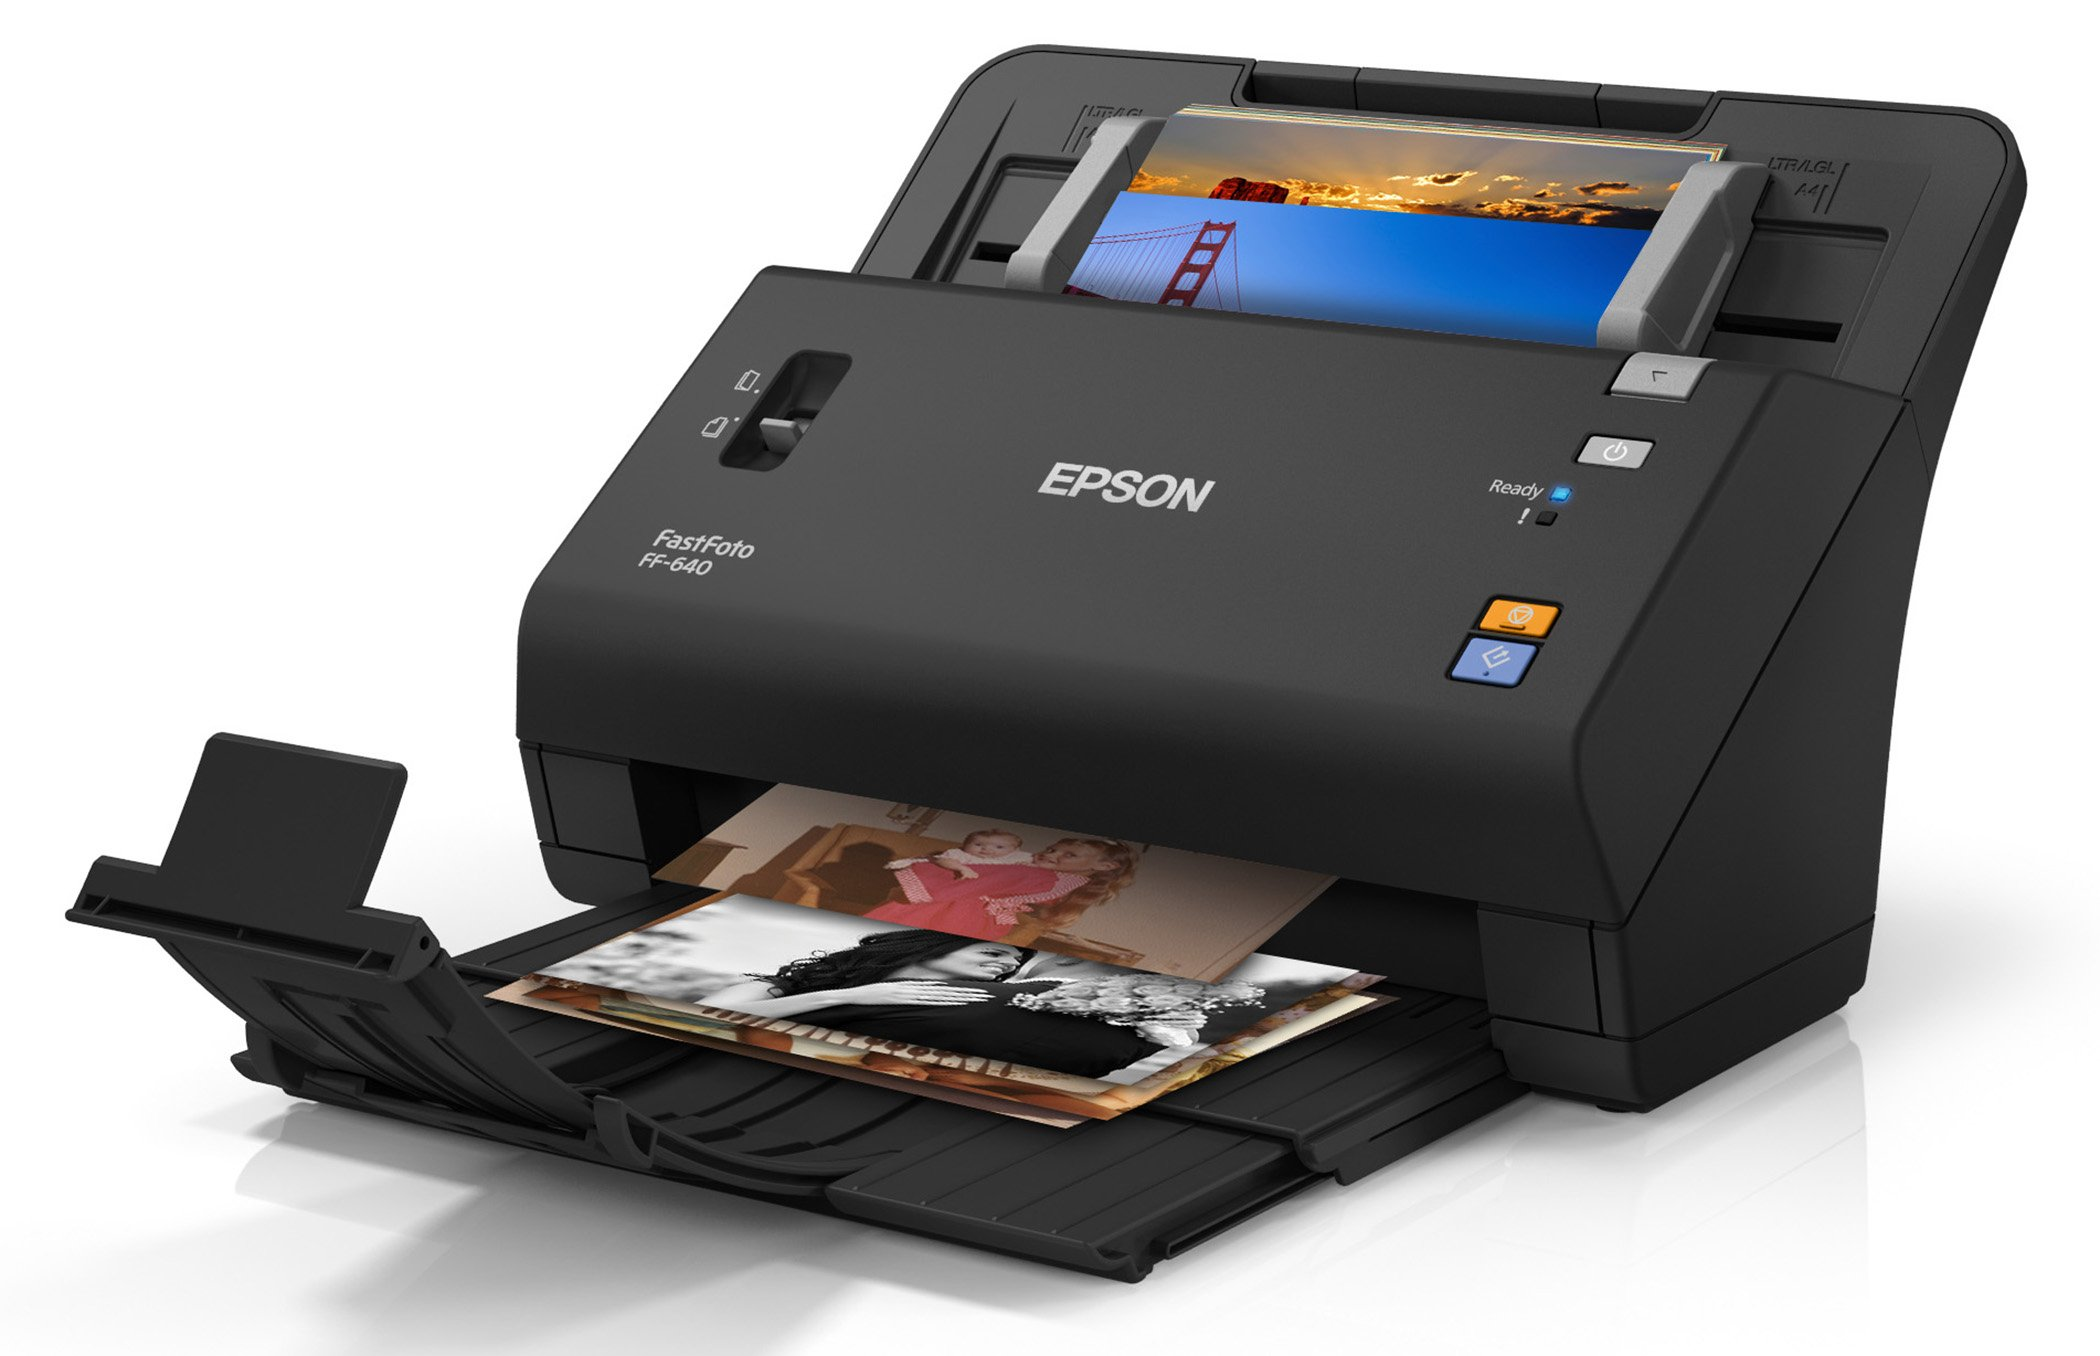 Epson FastFoto FF-640 High-Speed Photo Scanning System with Auto Photo Feeder by Epson (Image #3)